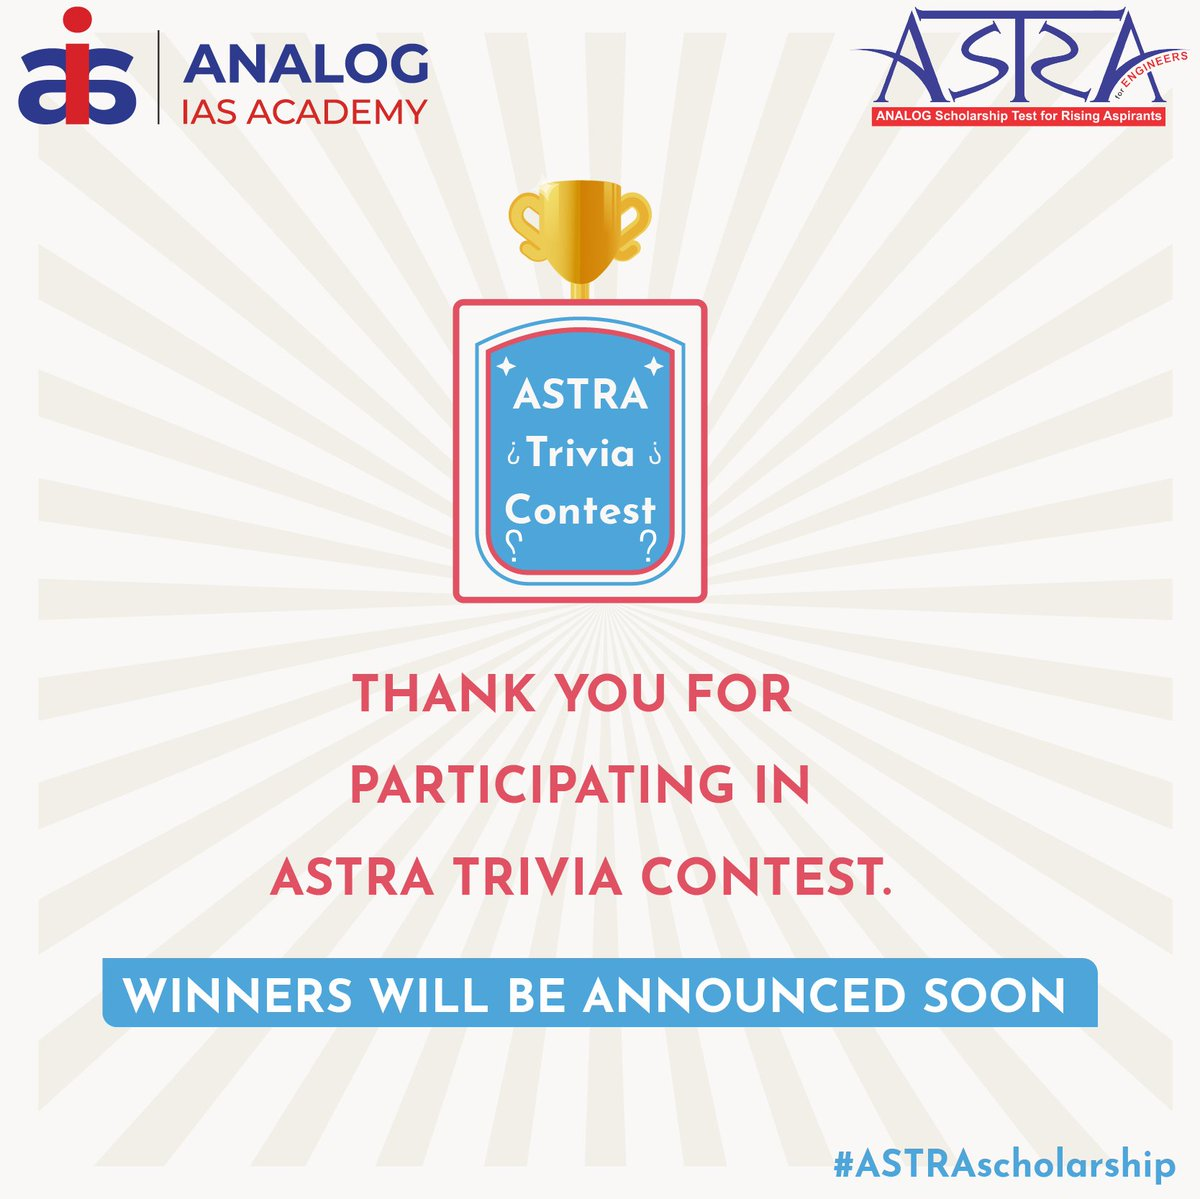 Thanks a lot for making the #Contest a huge success. Make sure you have followed us, liked and retweet all contest related posts, used #ASTRAscholarship and invited maximum friends to participate! Stay tuned, winners will be announced soon!  #ASTRAscholarship  #AnalogIAS